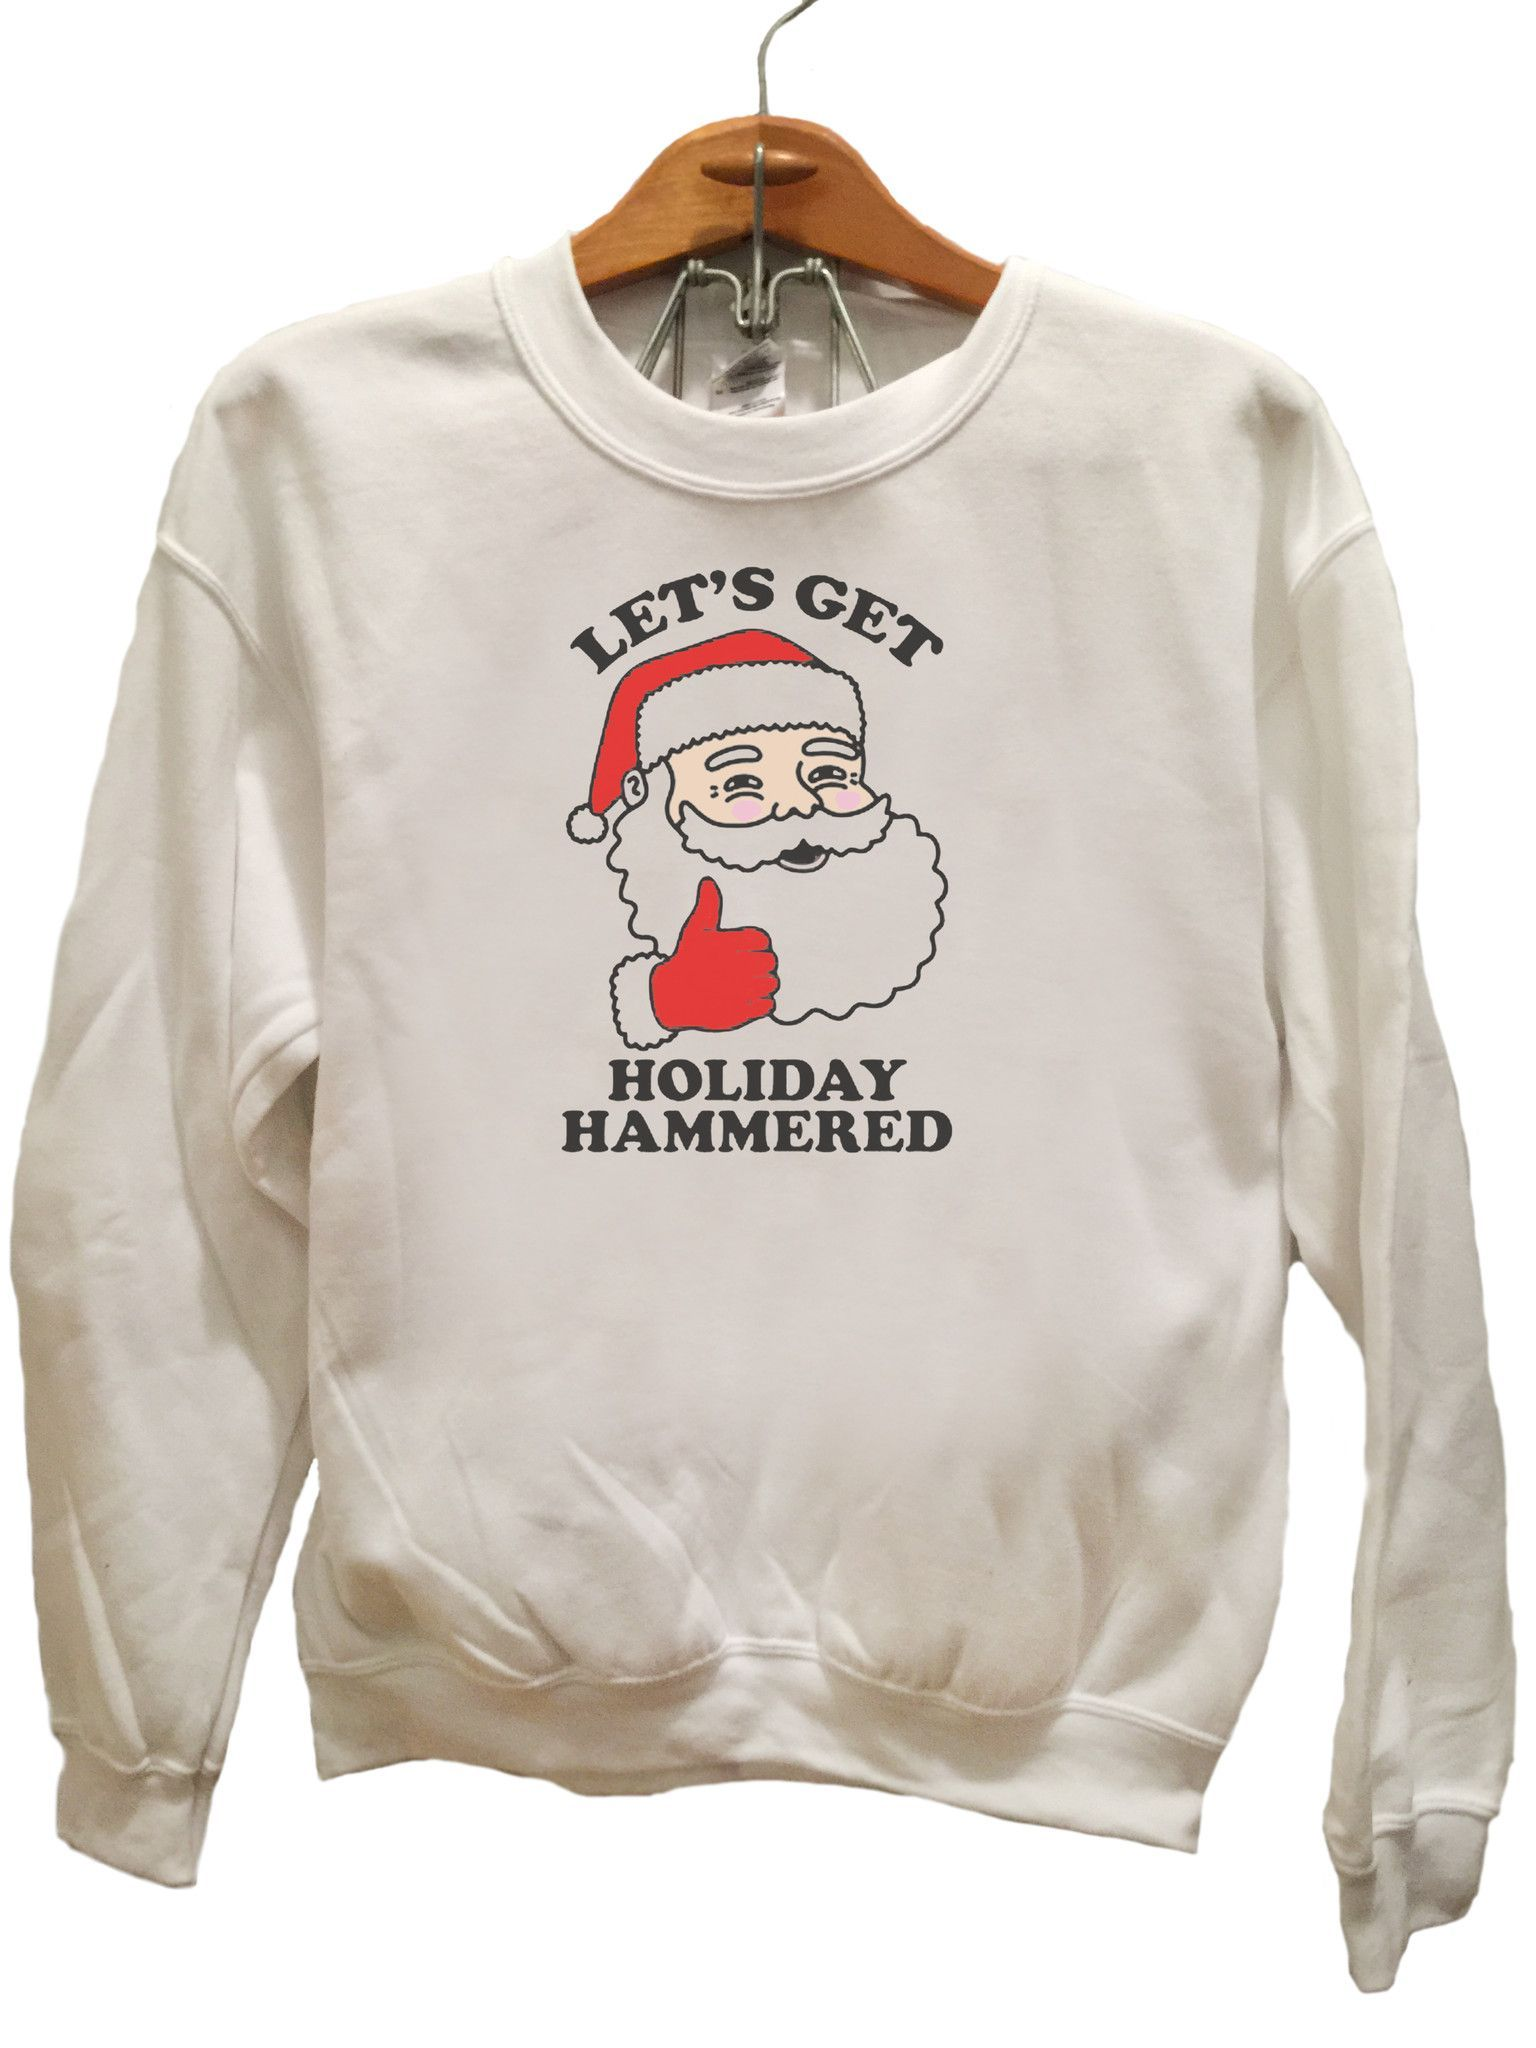 70f312ac Let's Get Holiday Hammered Harry Potter Shirts, The Marauders, Animal  Design, Crew Neck